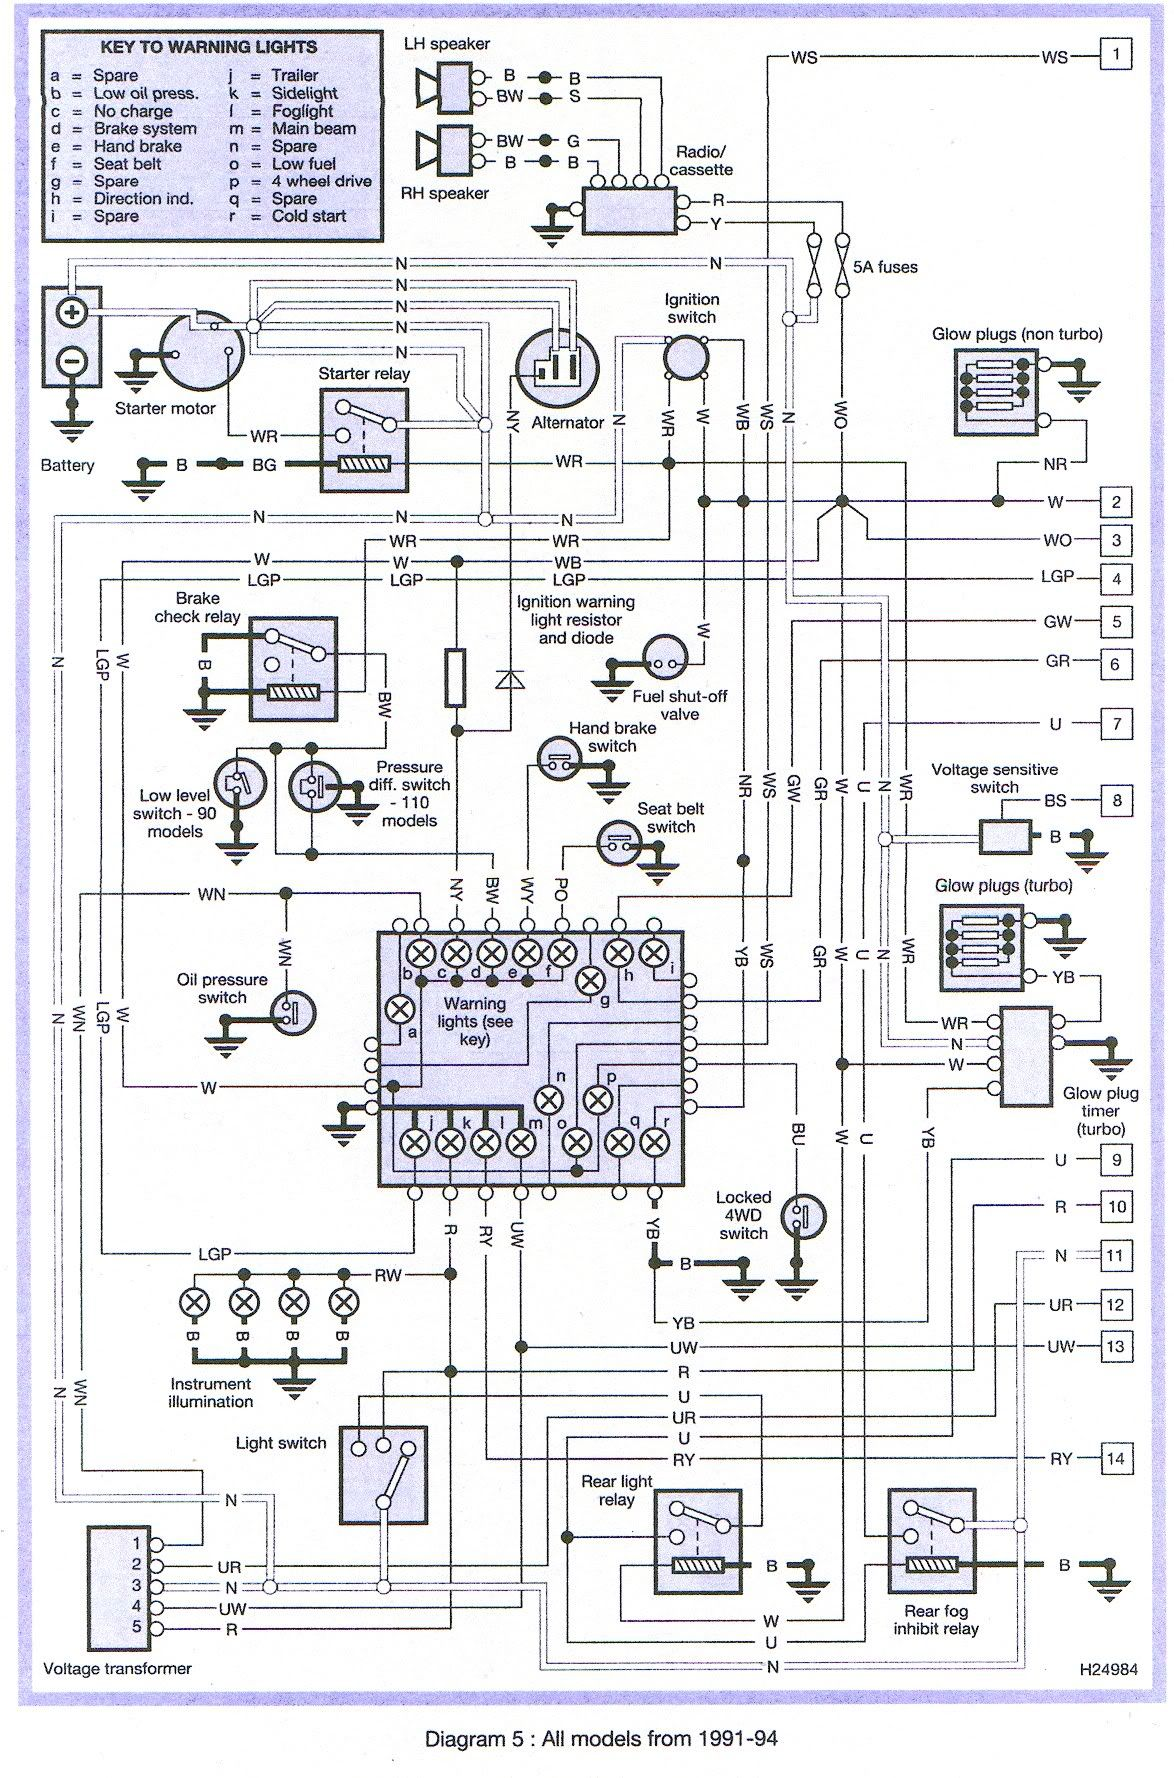 07629544bfff38ad2881b2c21312c6e6 land rover discovery wiring diagram manual repair with engine  at creativeand.co